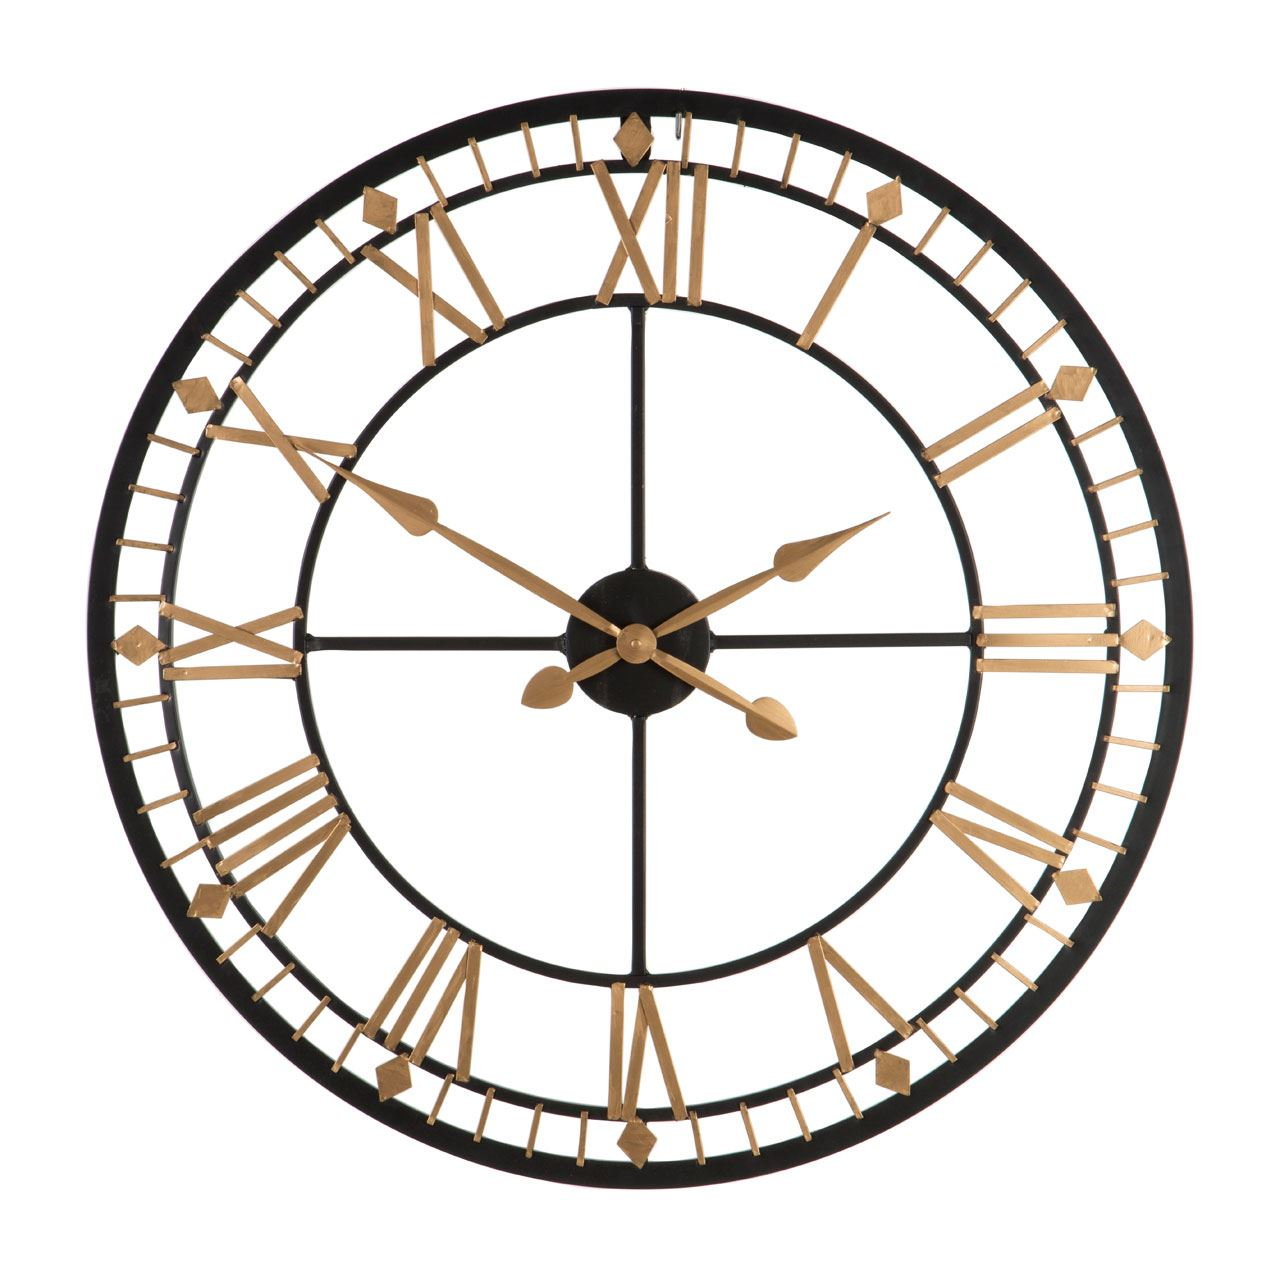 wall clock round square pendulum clocks for kichen living room office ebay. Black Bedroom Furniture Sets. Home Design Ideas